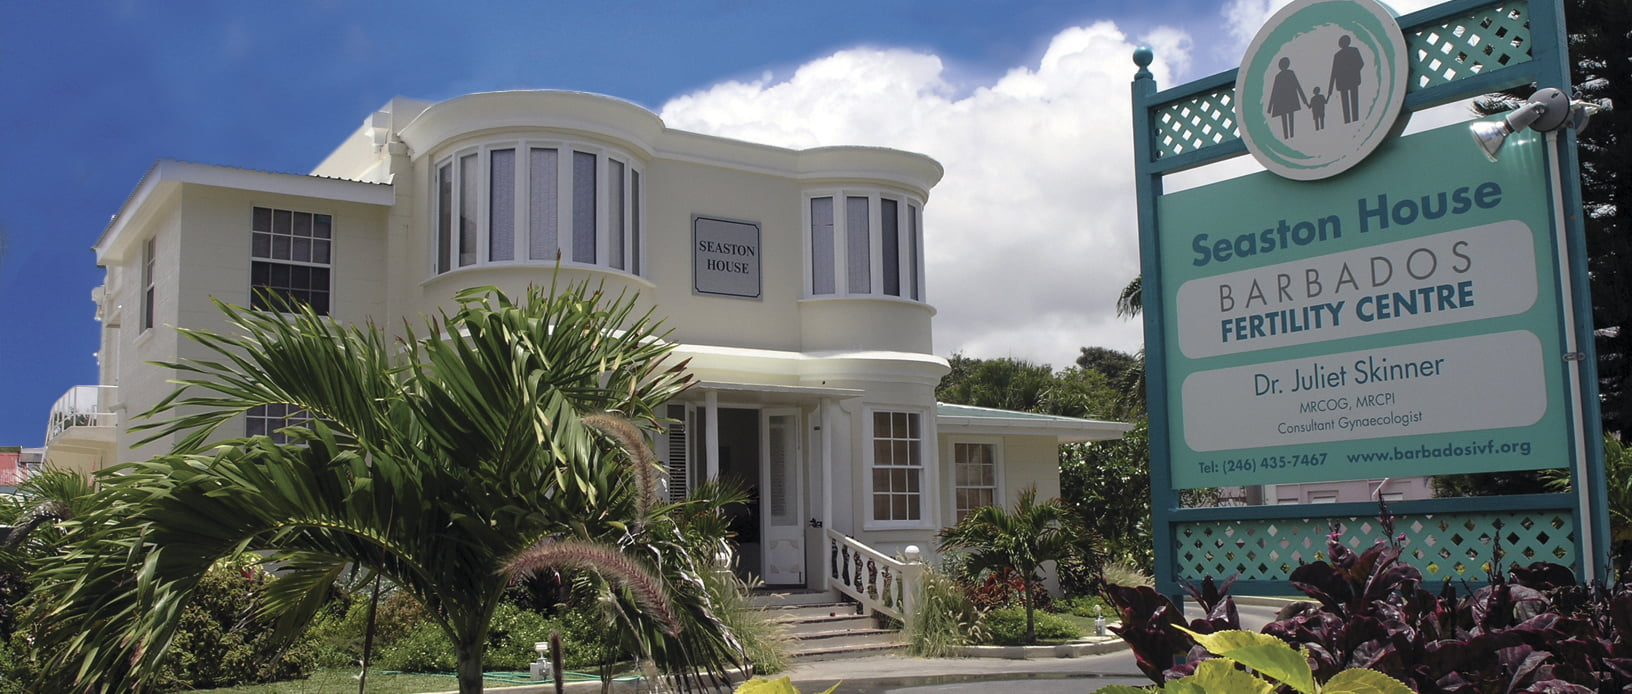 Barbados Fertility Centre Seaston House